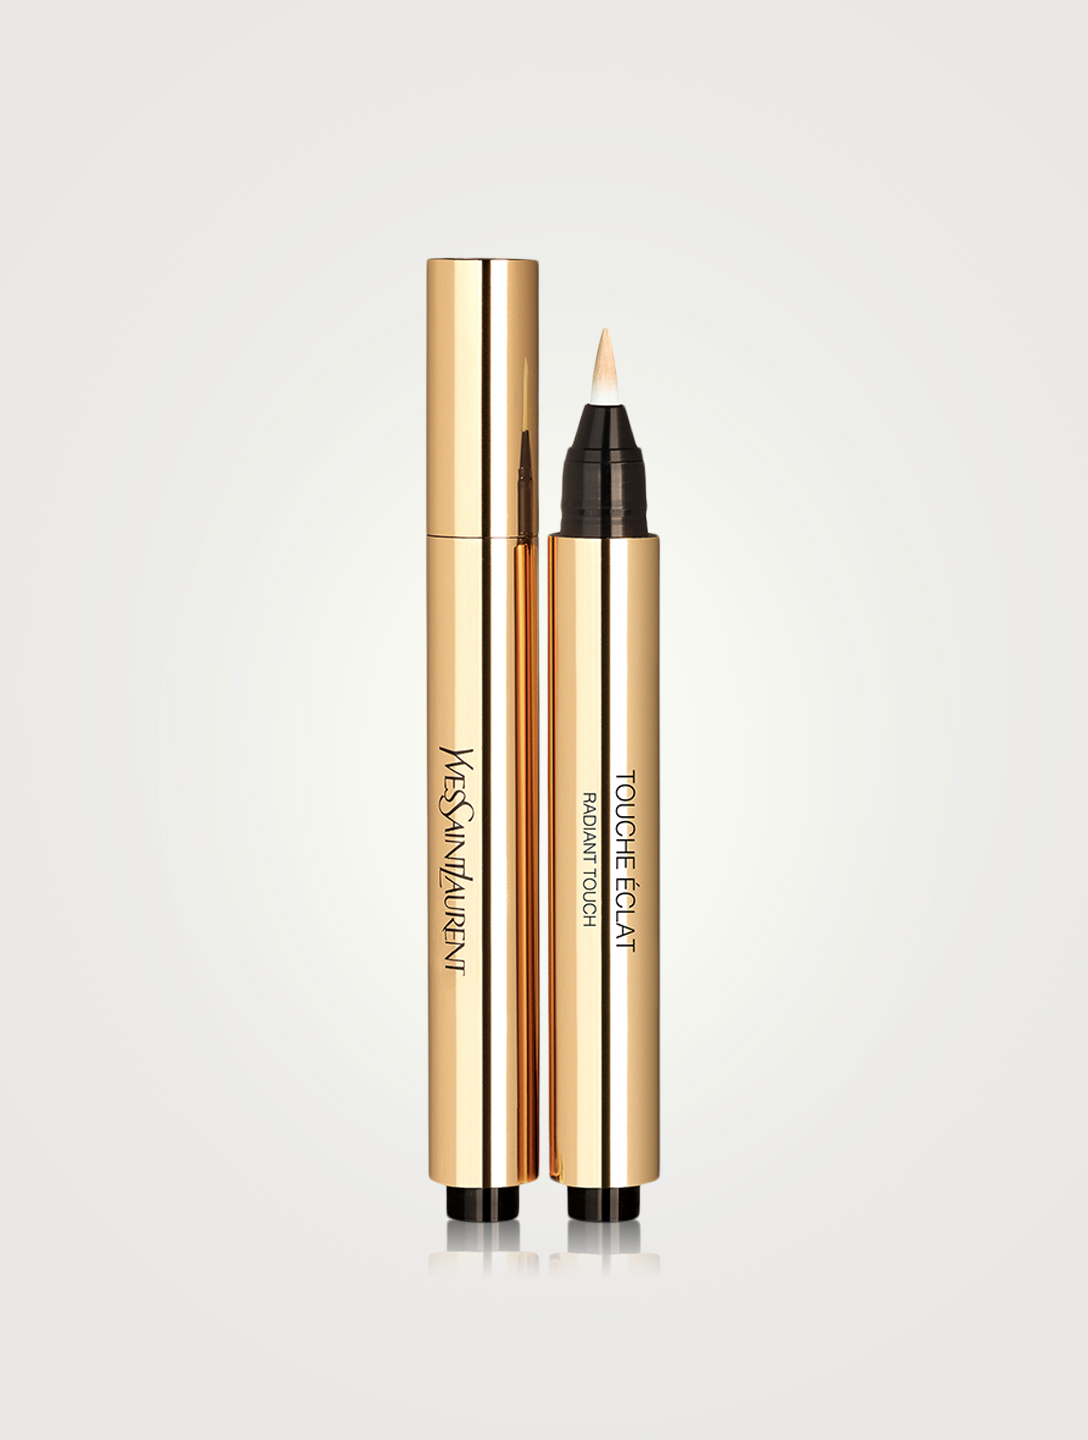 YVES SAINT LAURENT Touche Éclat Concealer Beauty Neutral